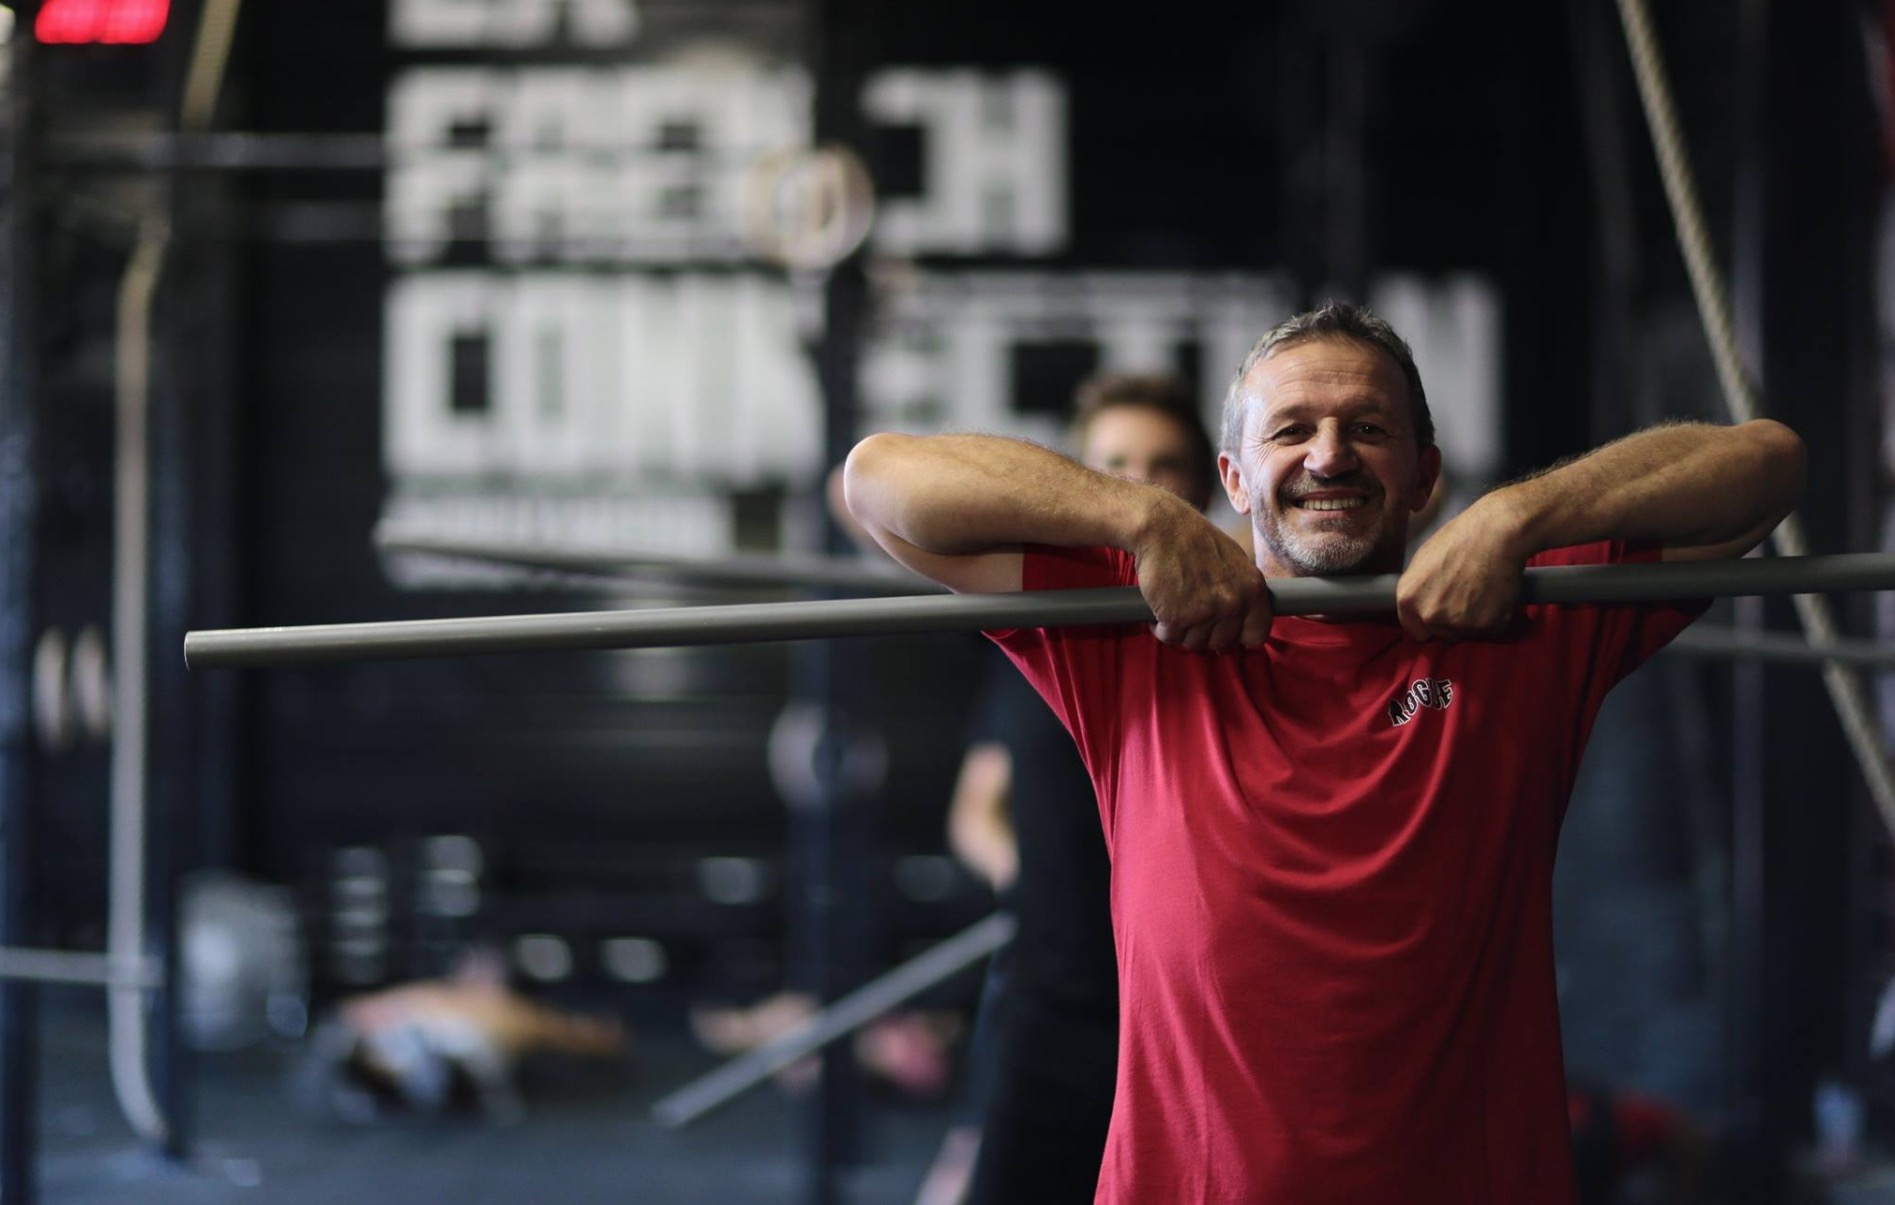 Salle De Sport Salon De Provence Crossfit Salon De Provence La French Co 6 Boxs De Crossfit